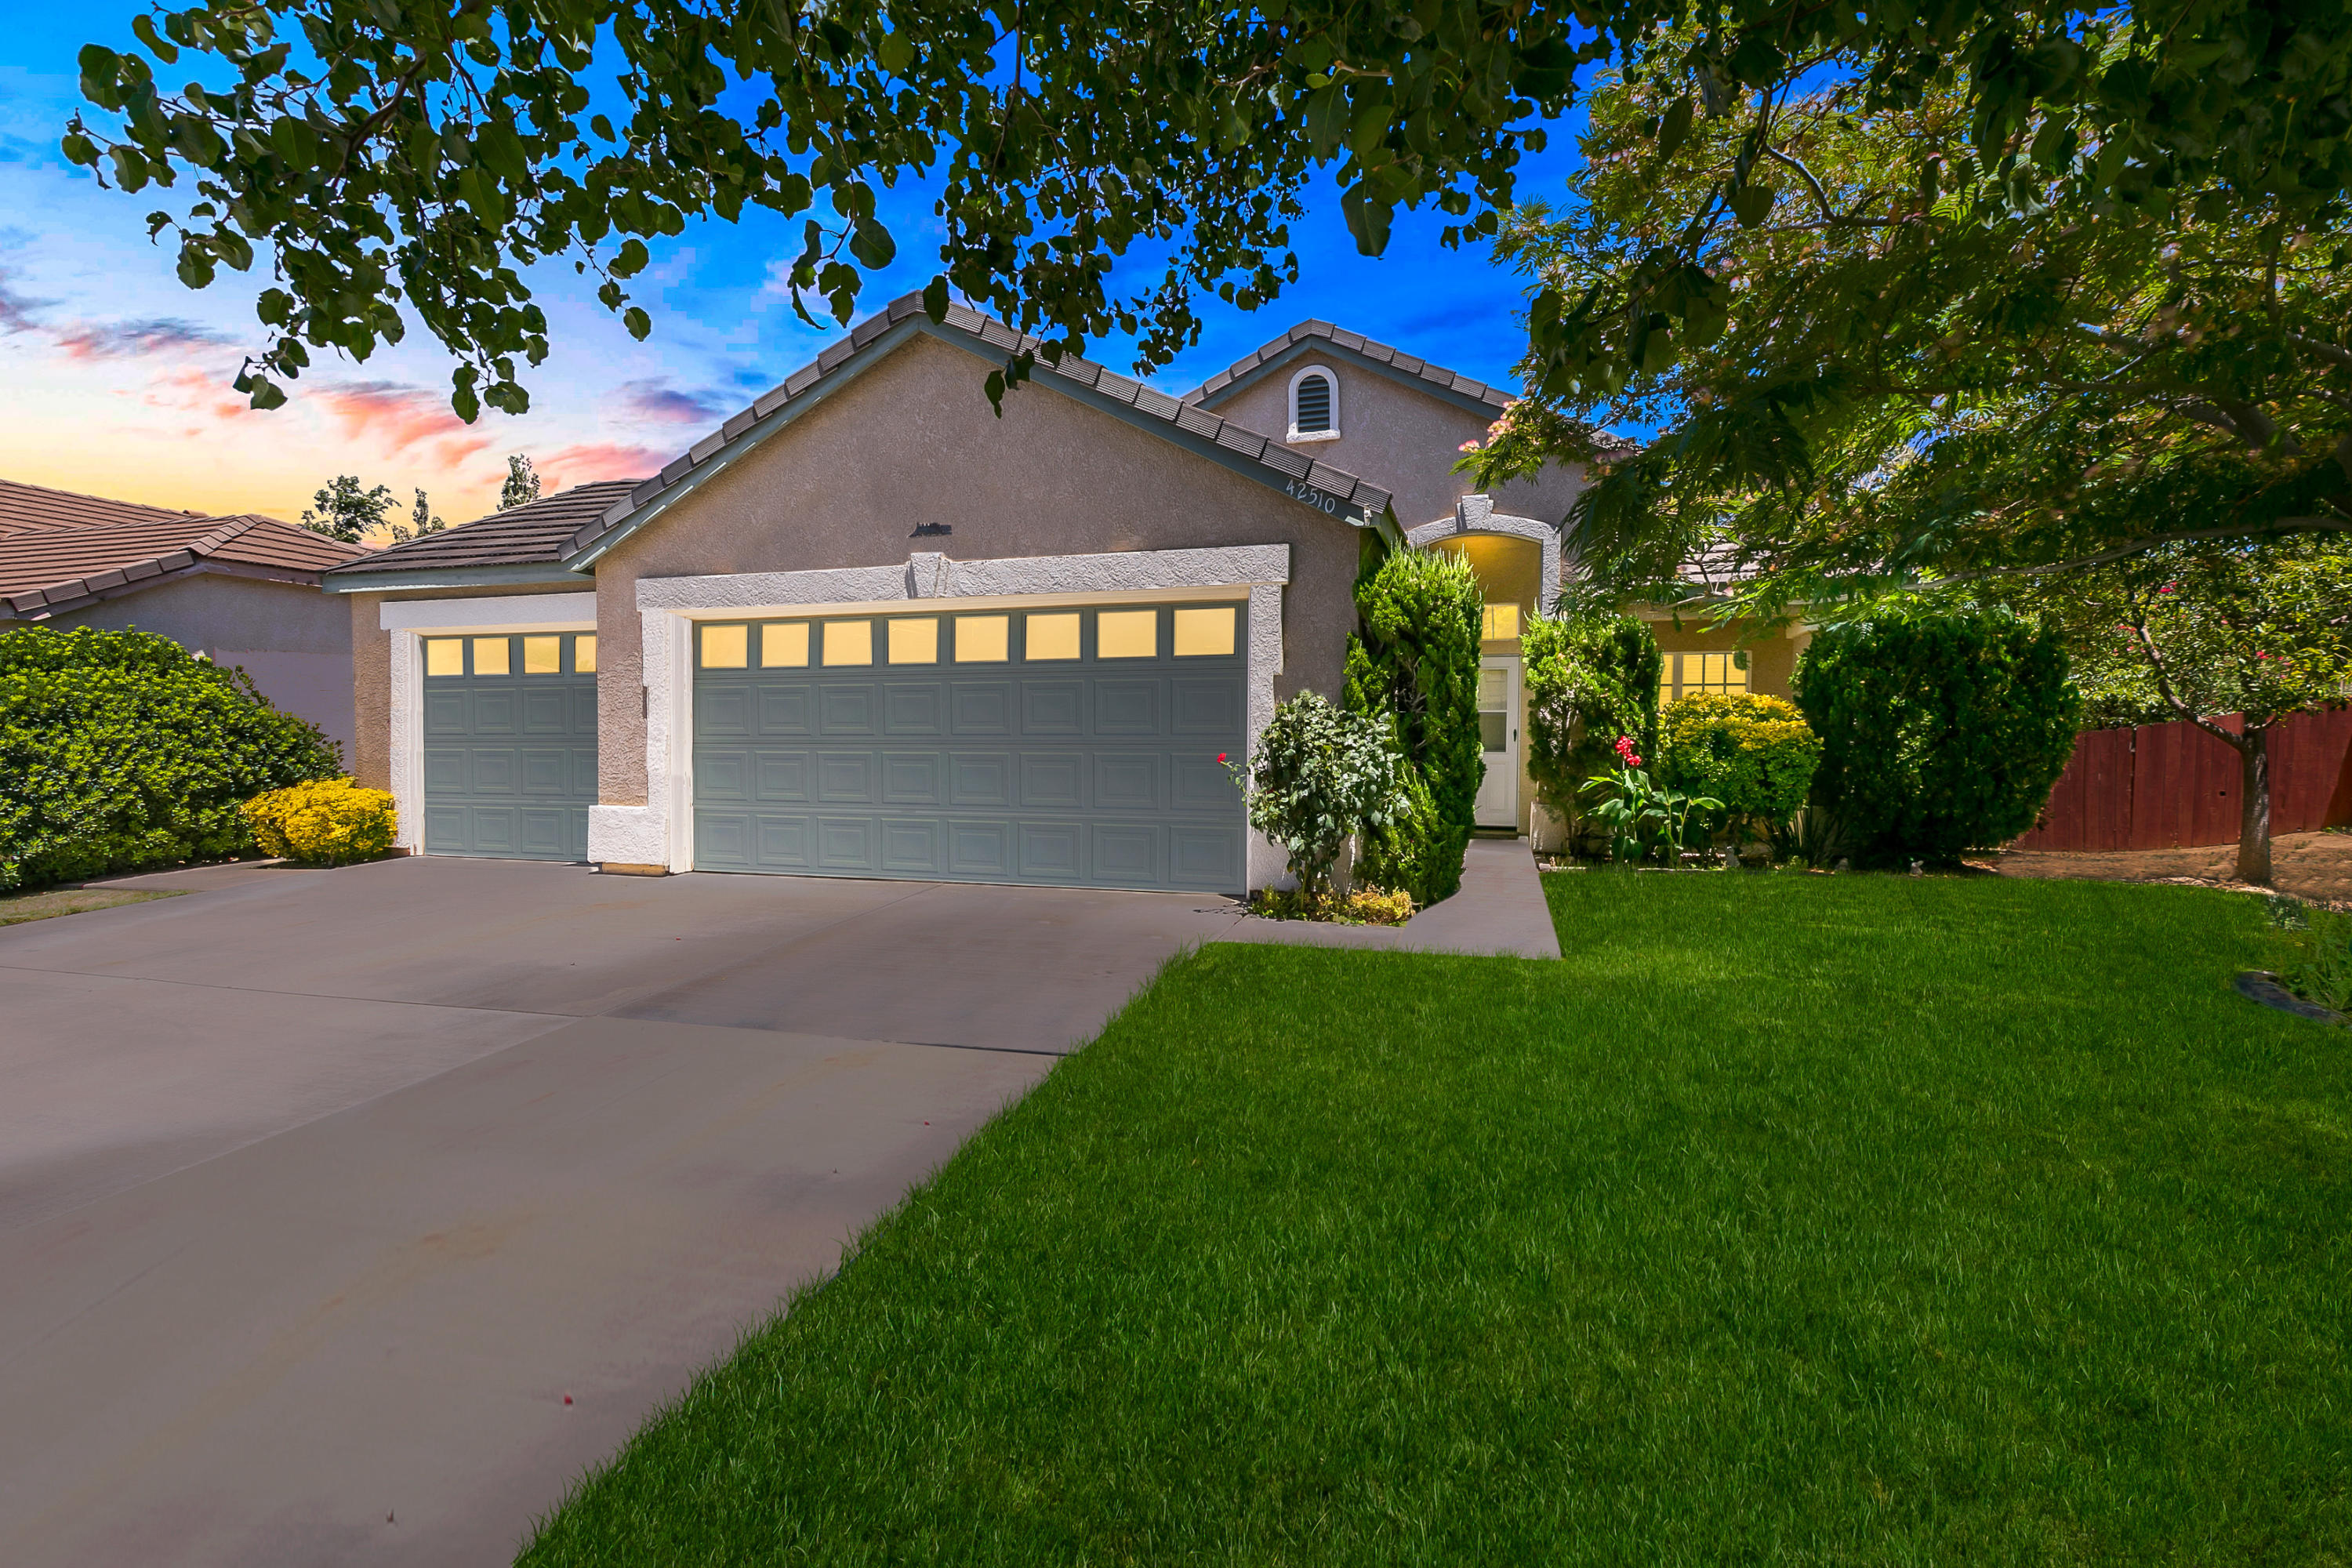 42510  Blossom Drive, Lancaster in Los Angeles County, CA 93536 Home for Sale